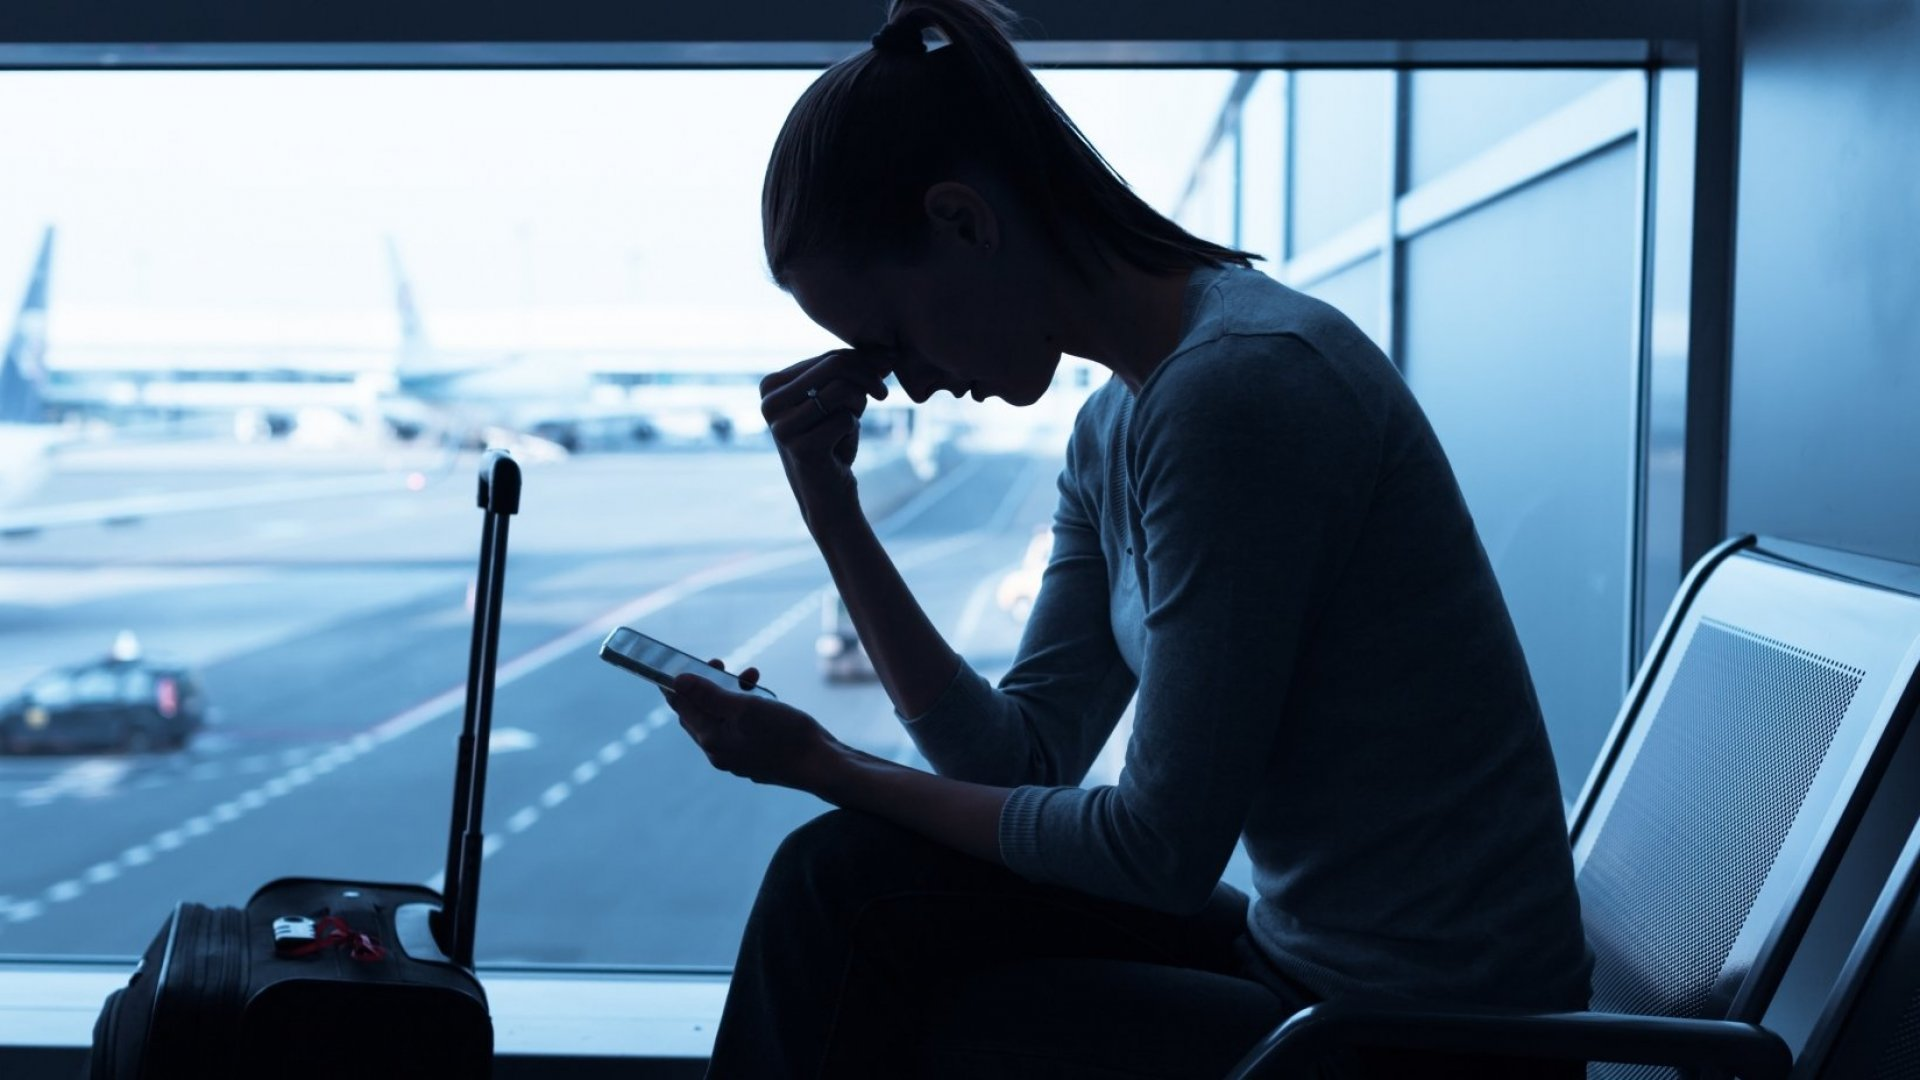 Common Travel Pitfalls, 5 Common Travel Pitfalls And How To Avoid Them